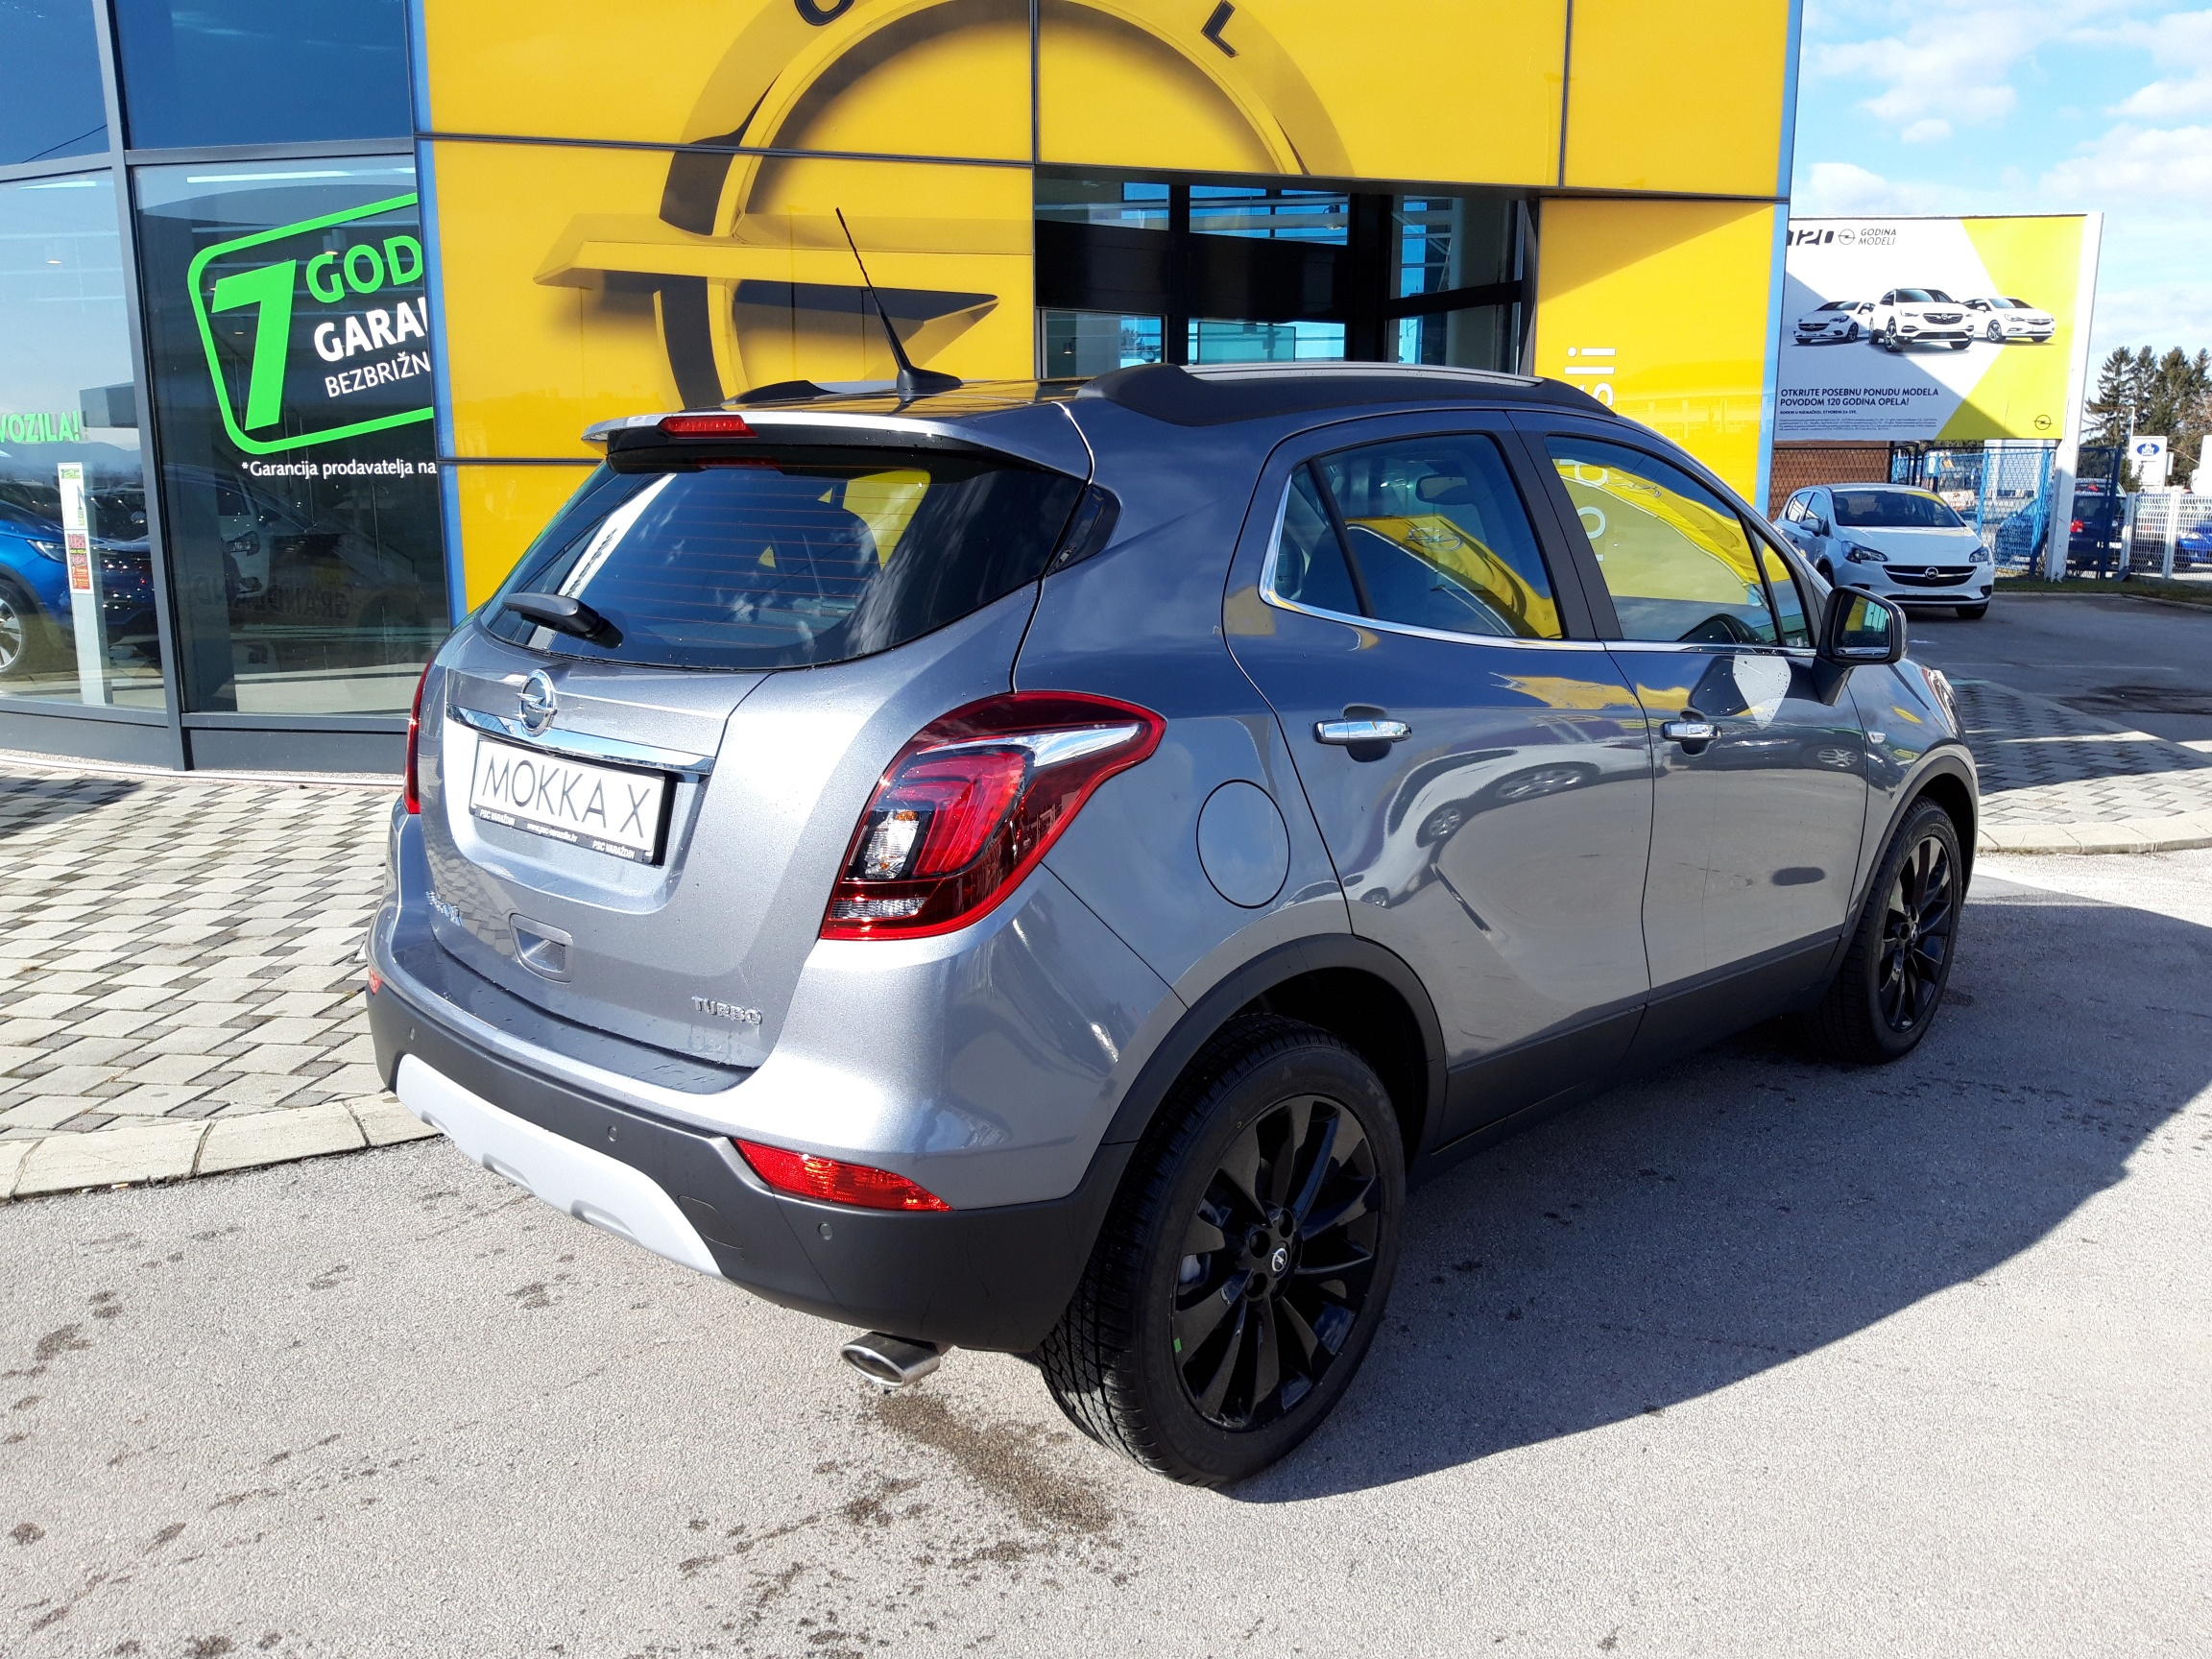 Opel Mokka X Innovation 1.4 Turbo FWD AT6 140 kw - 7 godina garancije!